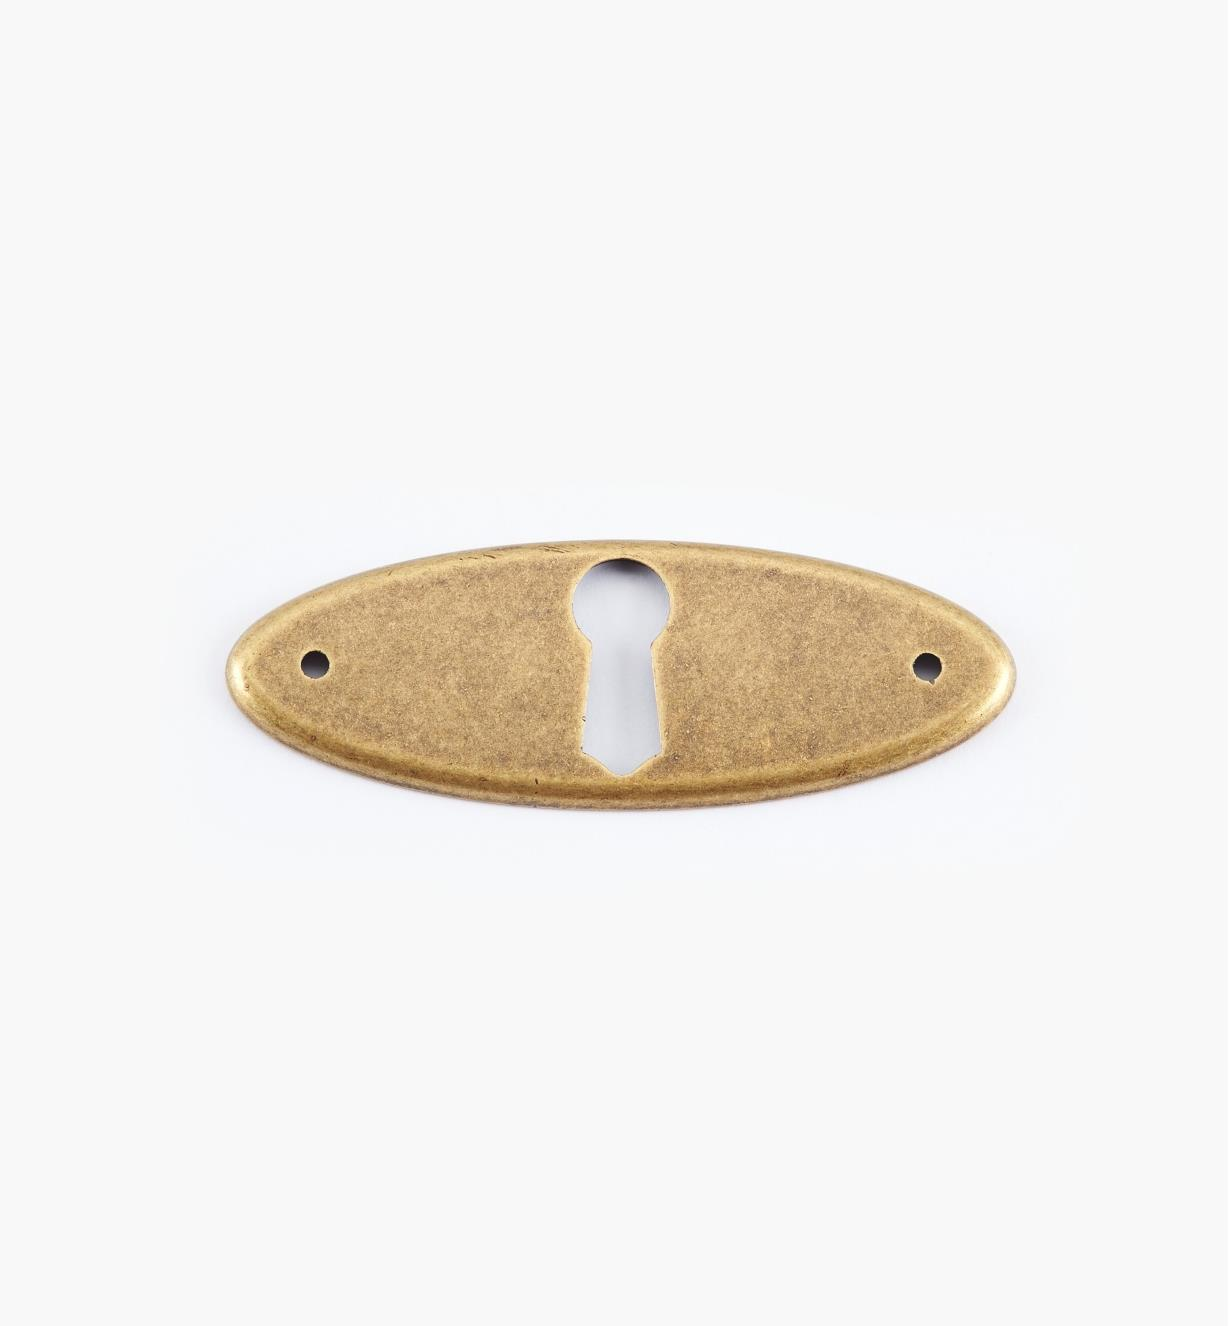 01X3020 - 65mm x 24mm Antique Brass Horizontal Escutcheon